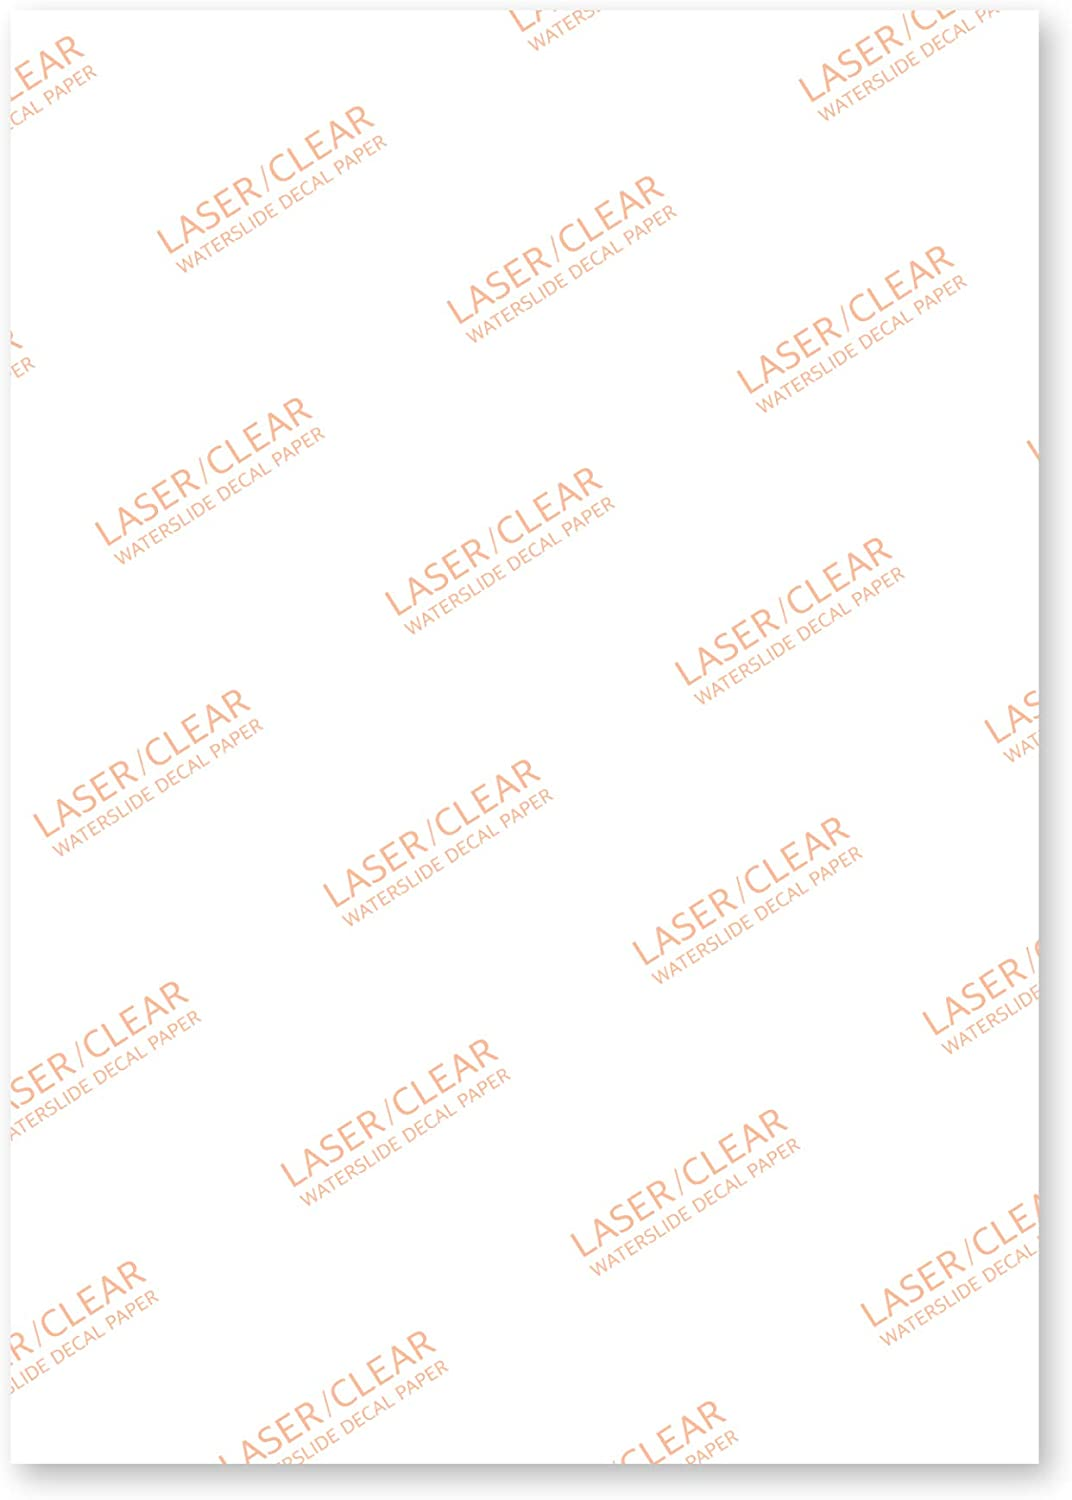 Sunnyscopa Laser Waterslide Decal Paper Urethane Standard 8.5X11, Clear, 100 Sheets